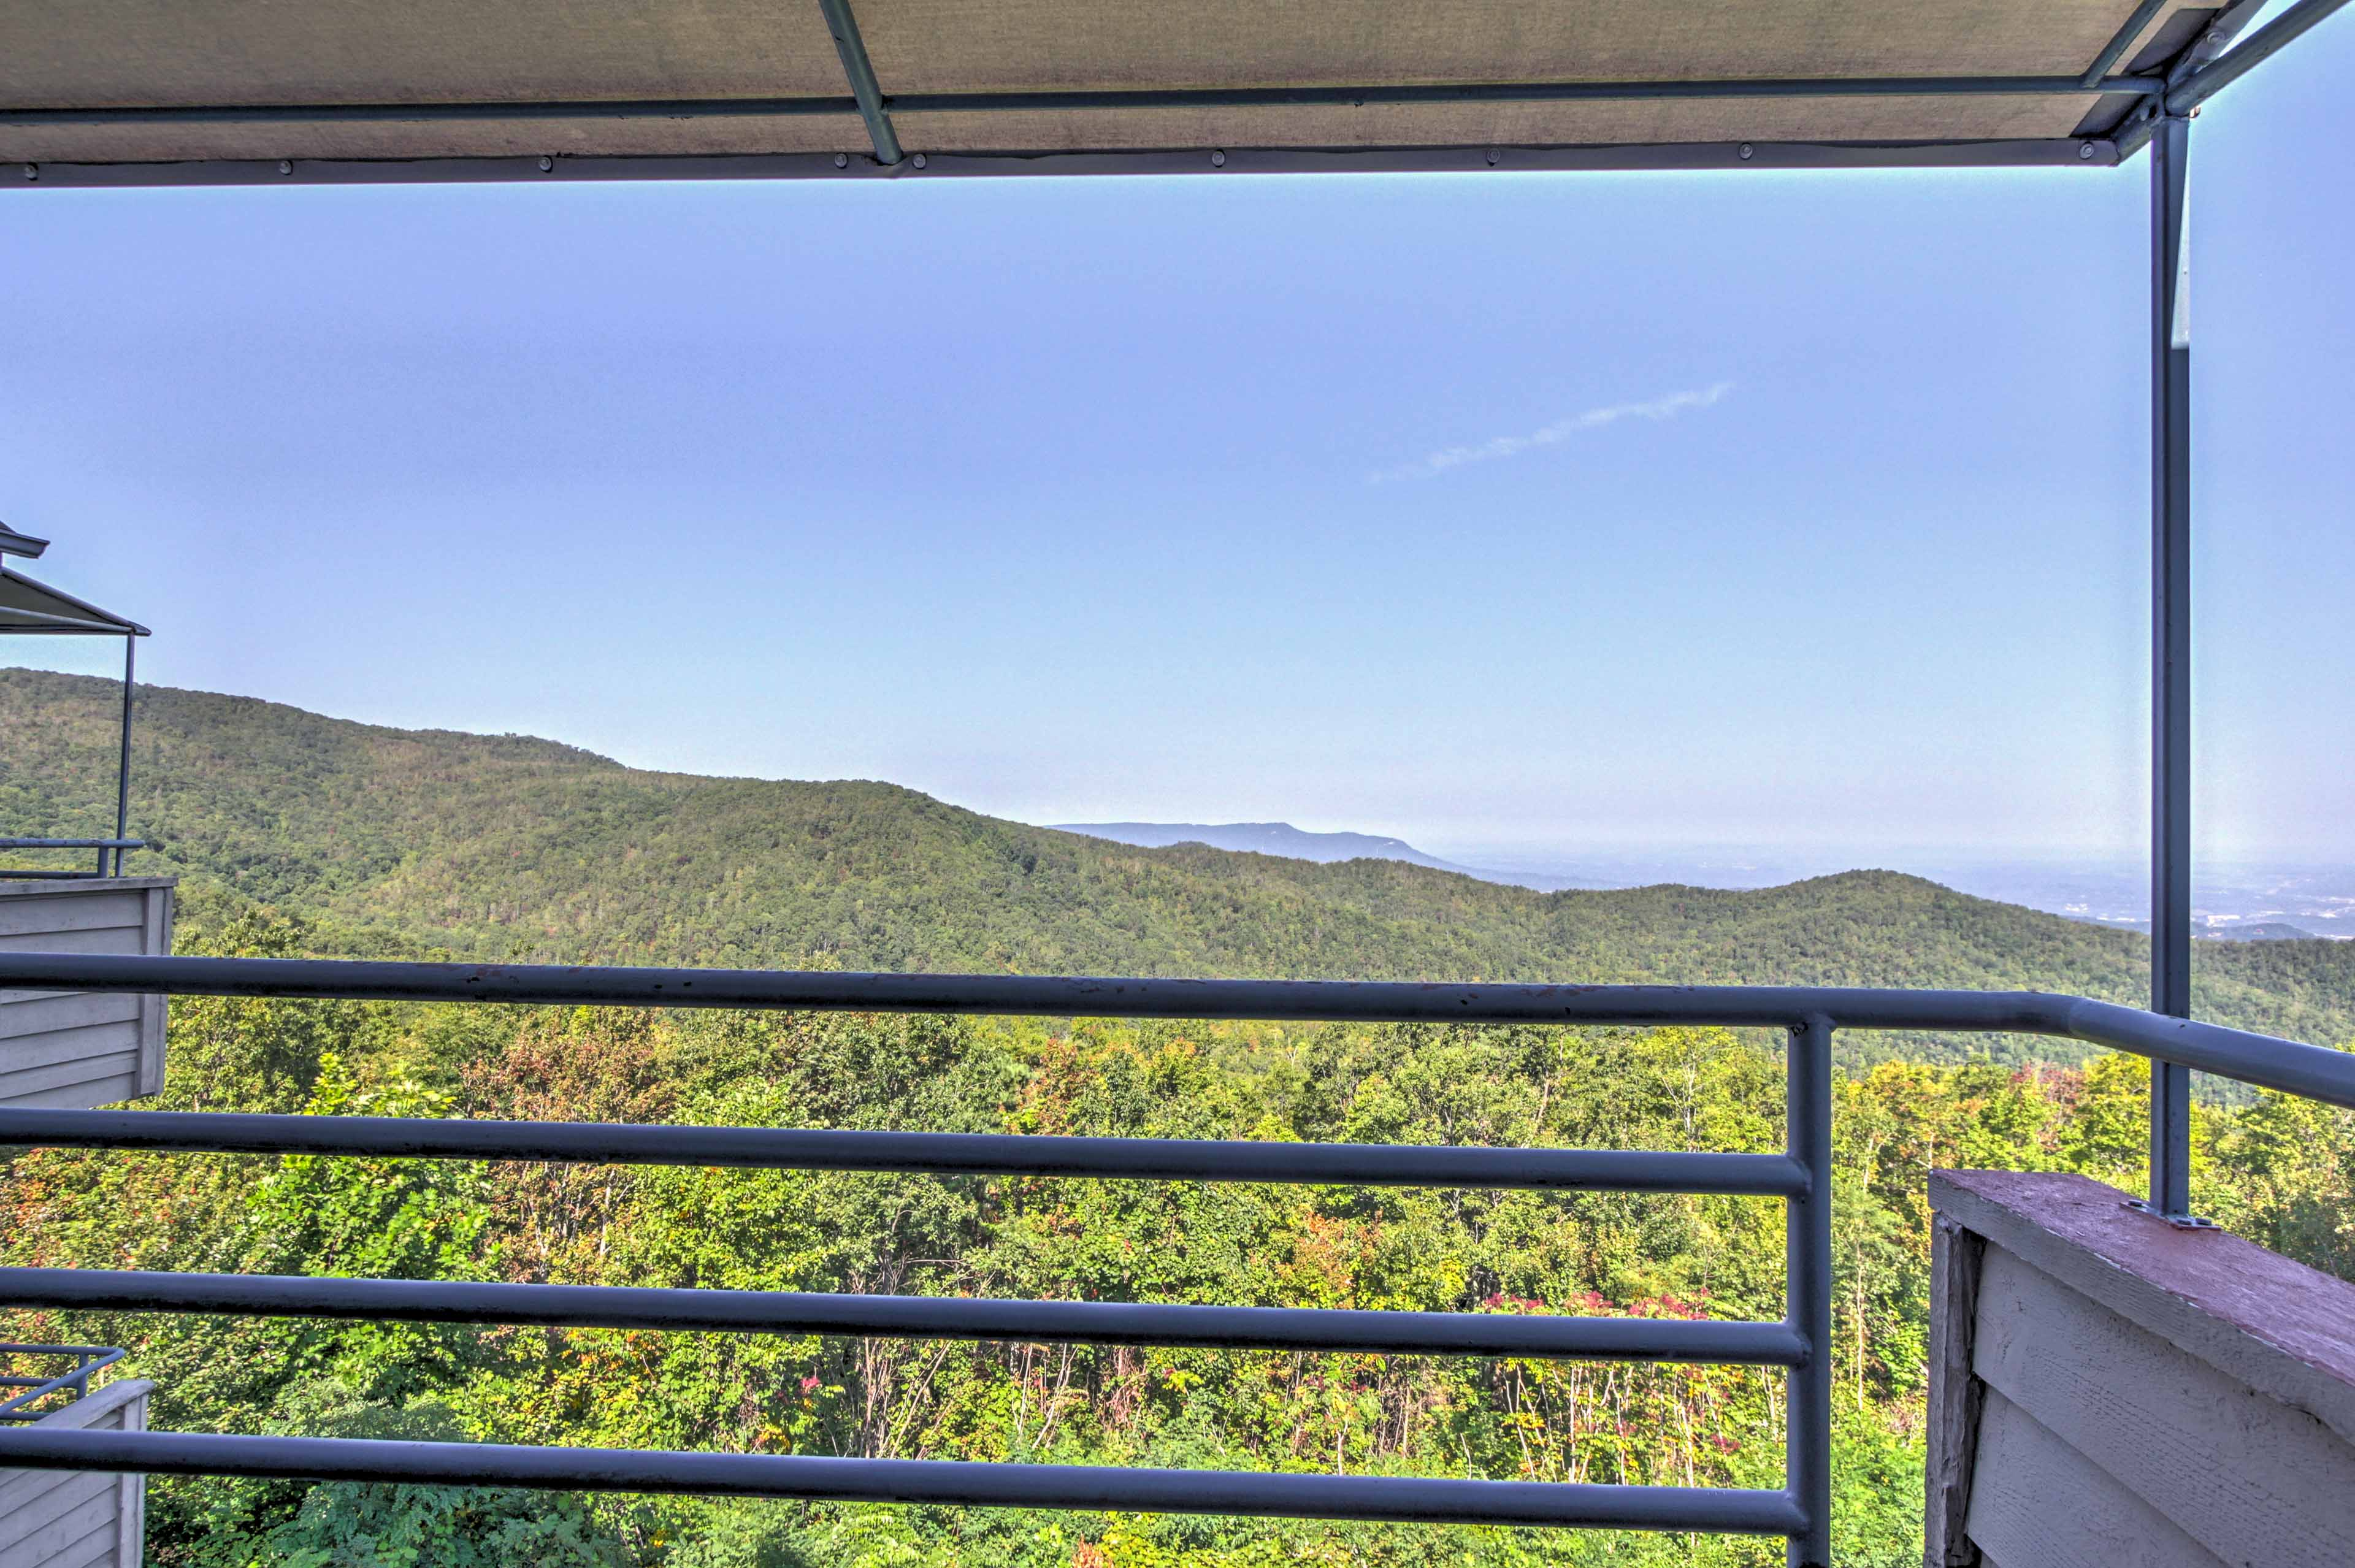 Step out onto the balcony for mountain views!